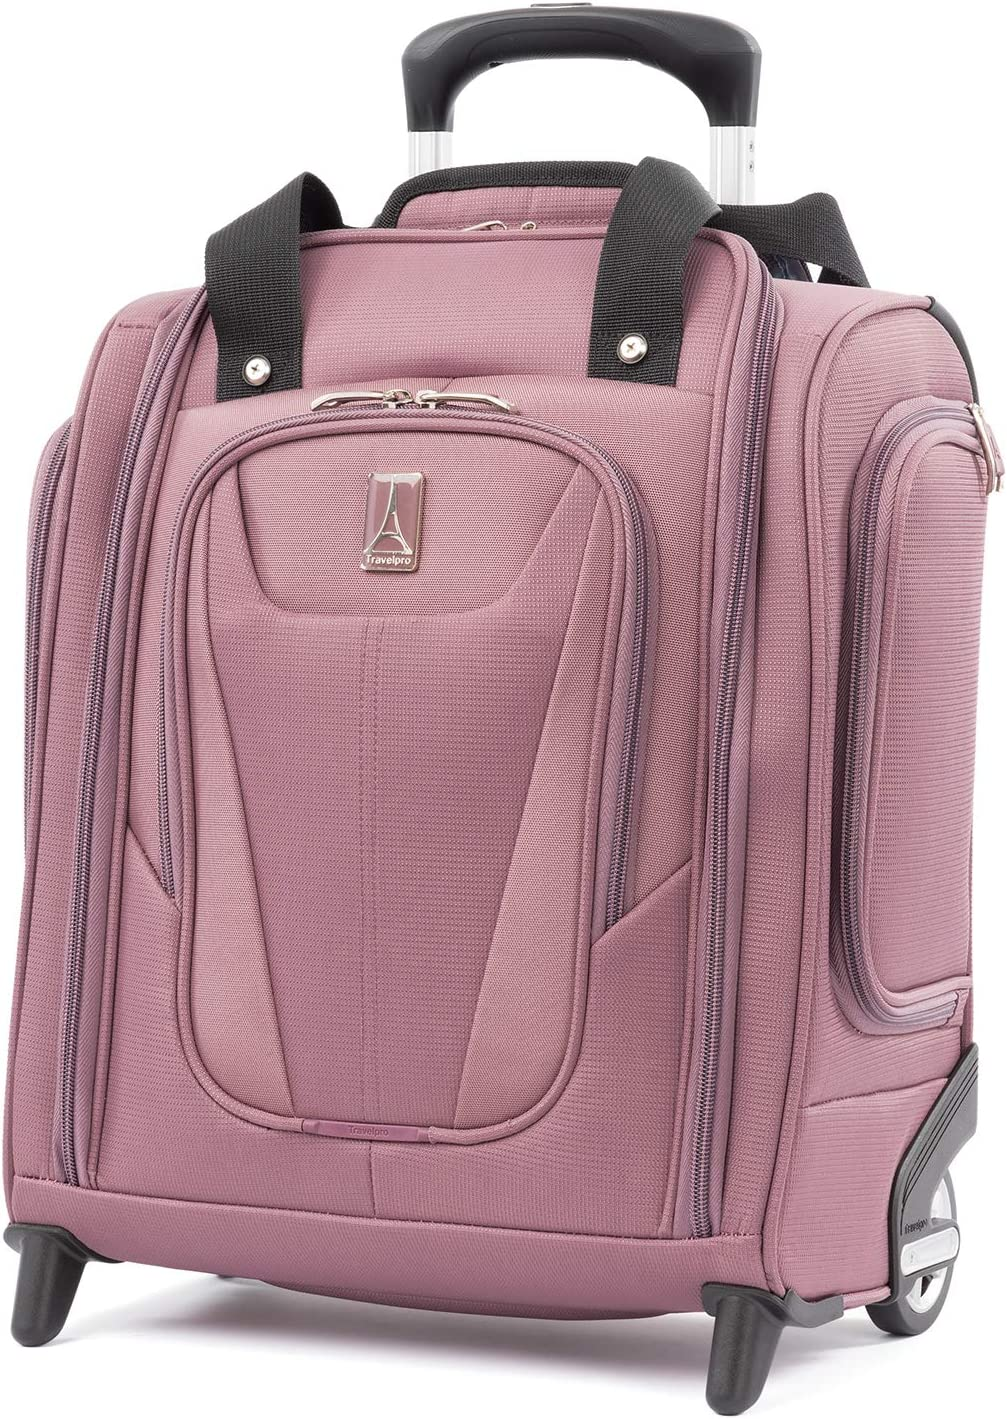 Travelpro Maxlite 5 - Rolling Underseat Compact Carry-On Bag, Dusty Rose, 15-Inch